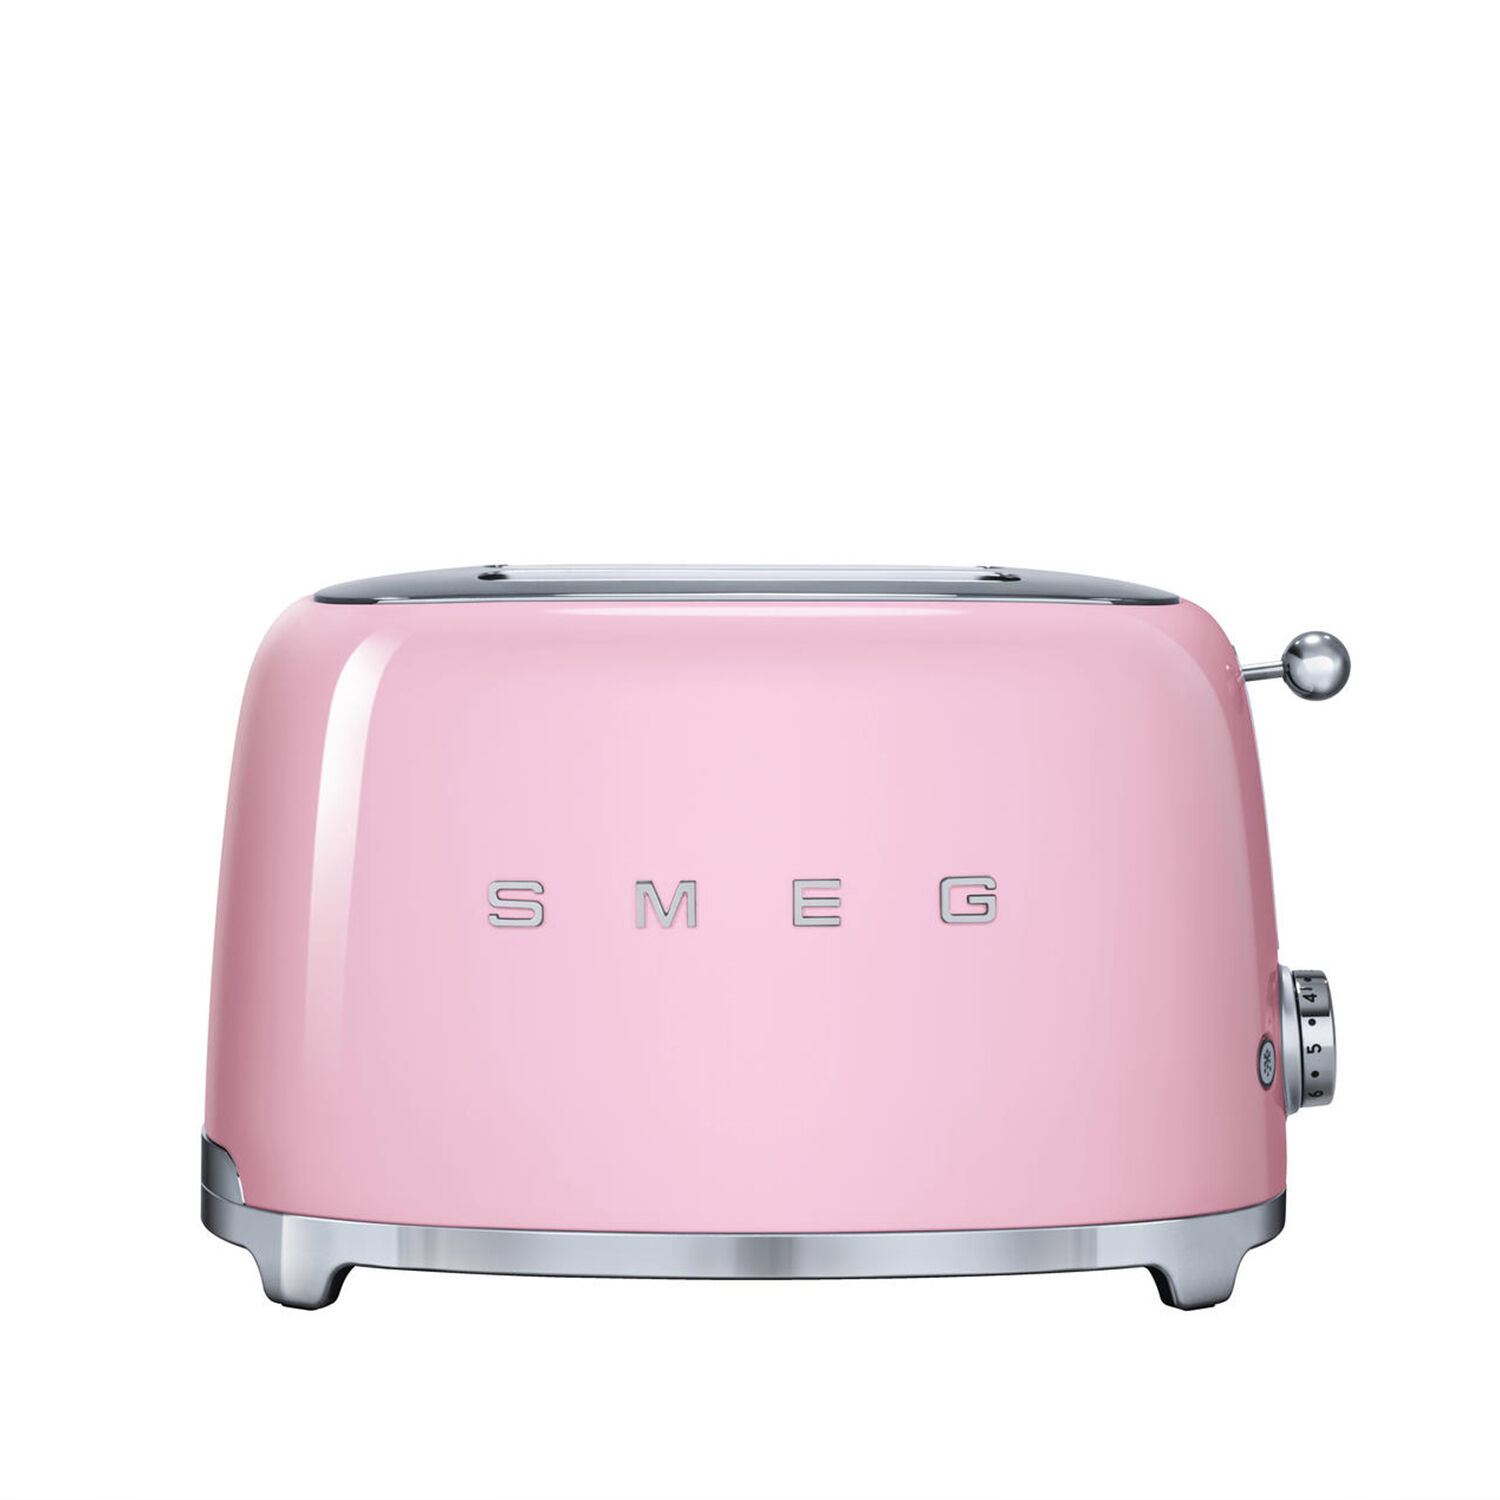 Smeg 50/'s Retro Style Kettle /& Toaster Set in Pink2 Year Warranty